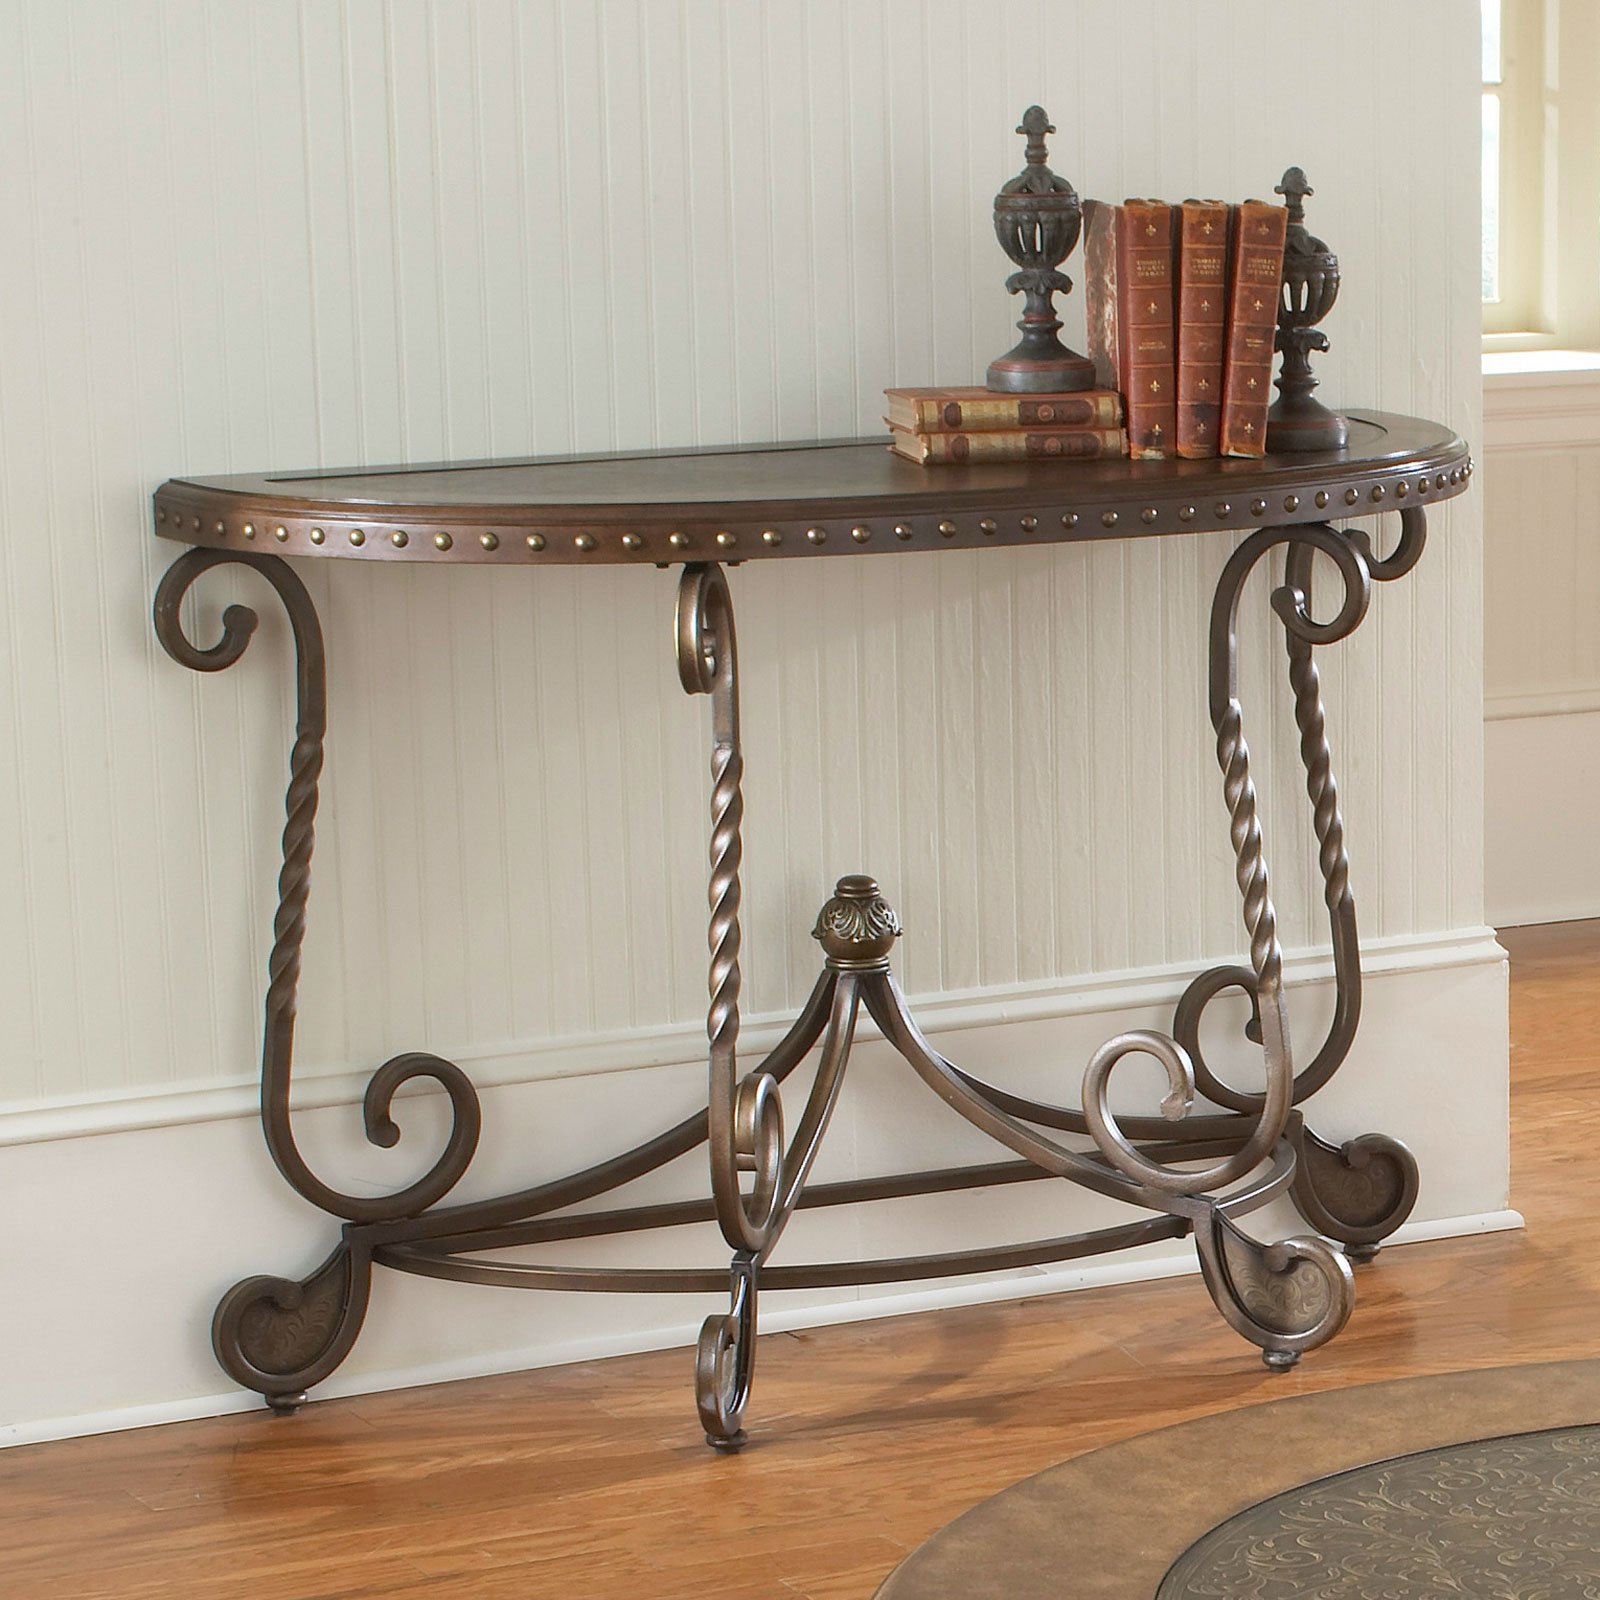 Bernards Metal Etched Round Console Table with Nailheads